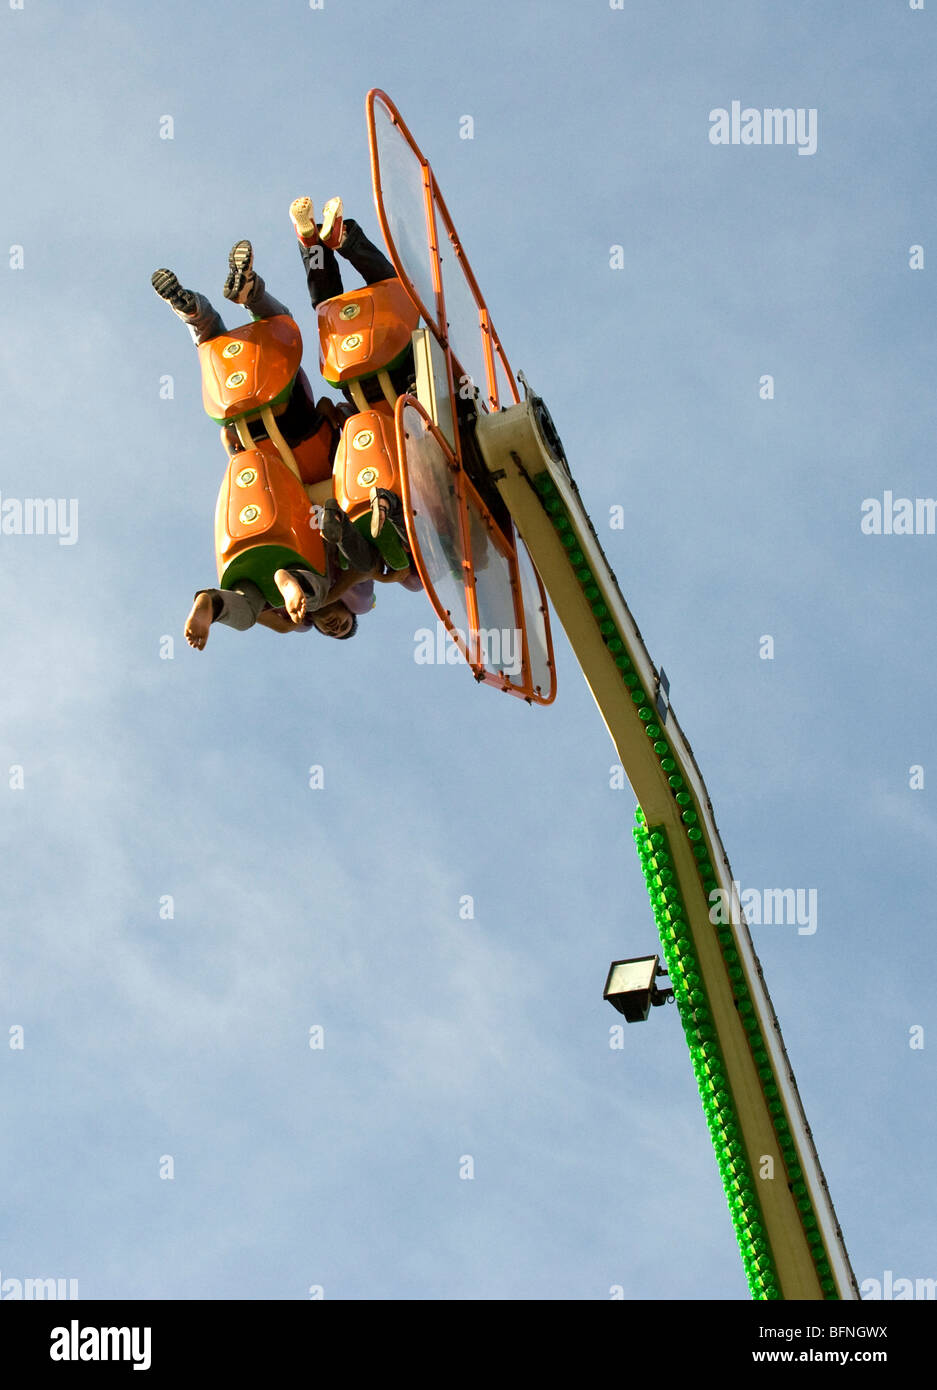 Four people spinning  in the air on a thrill ride - Stock Image